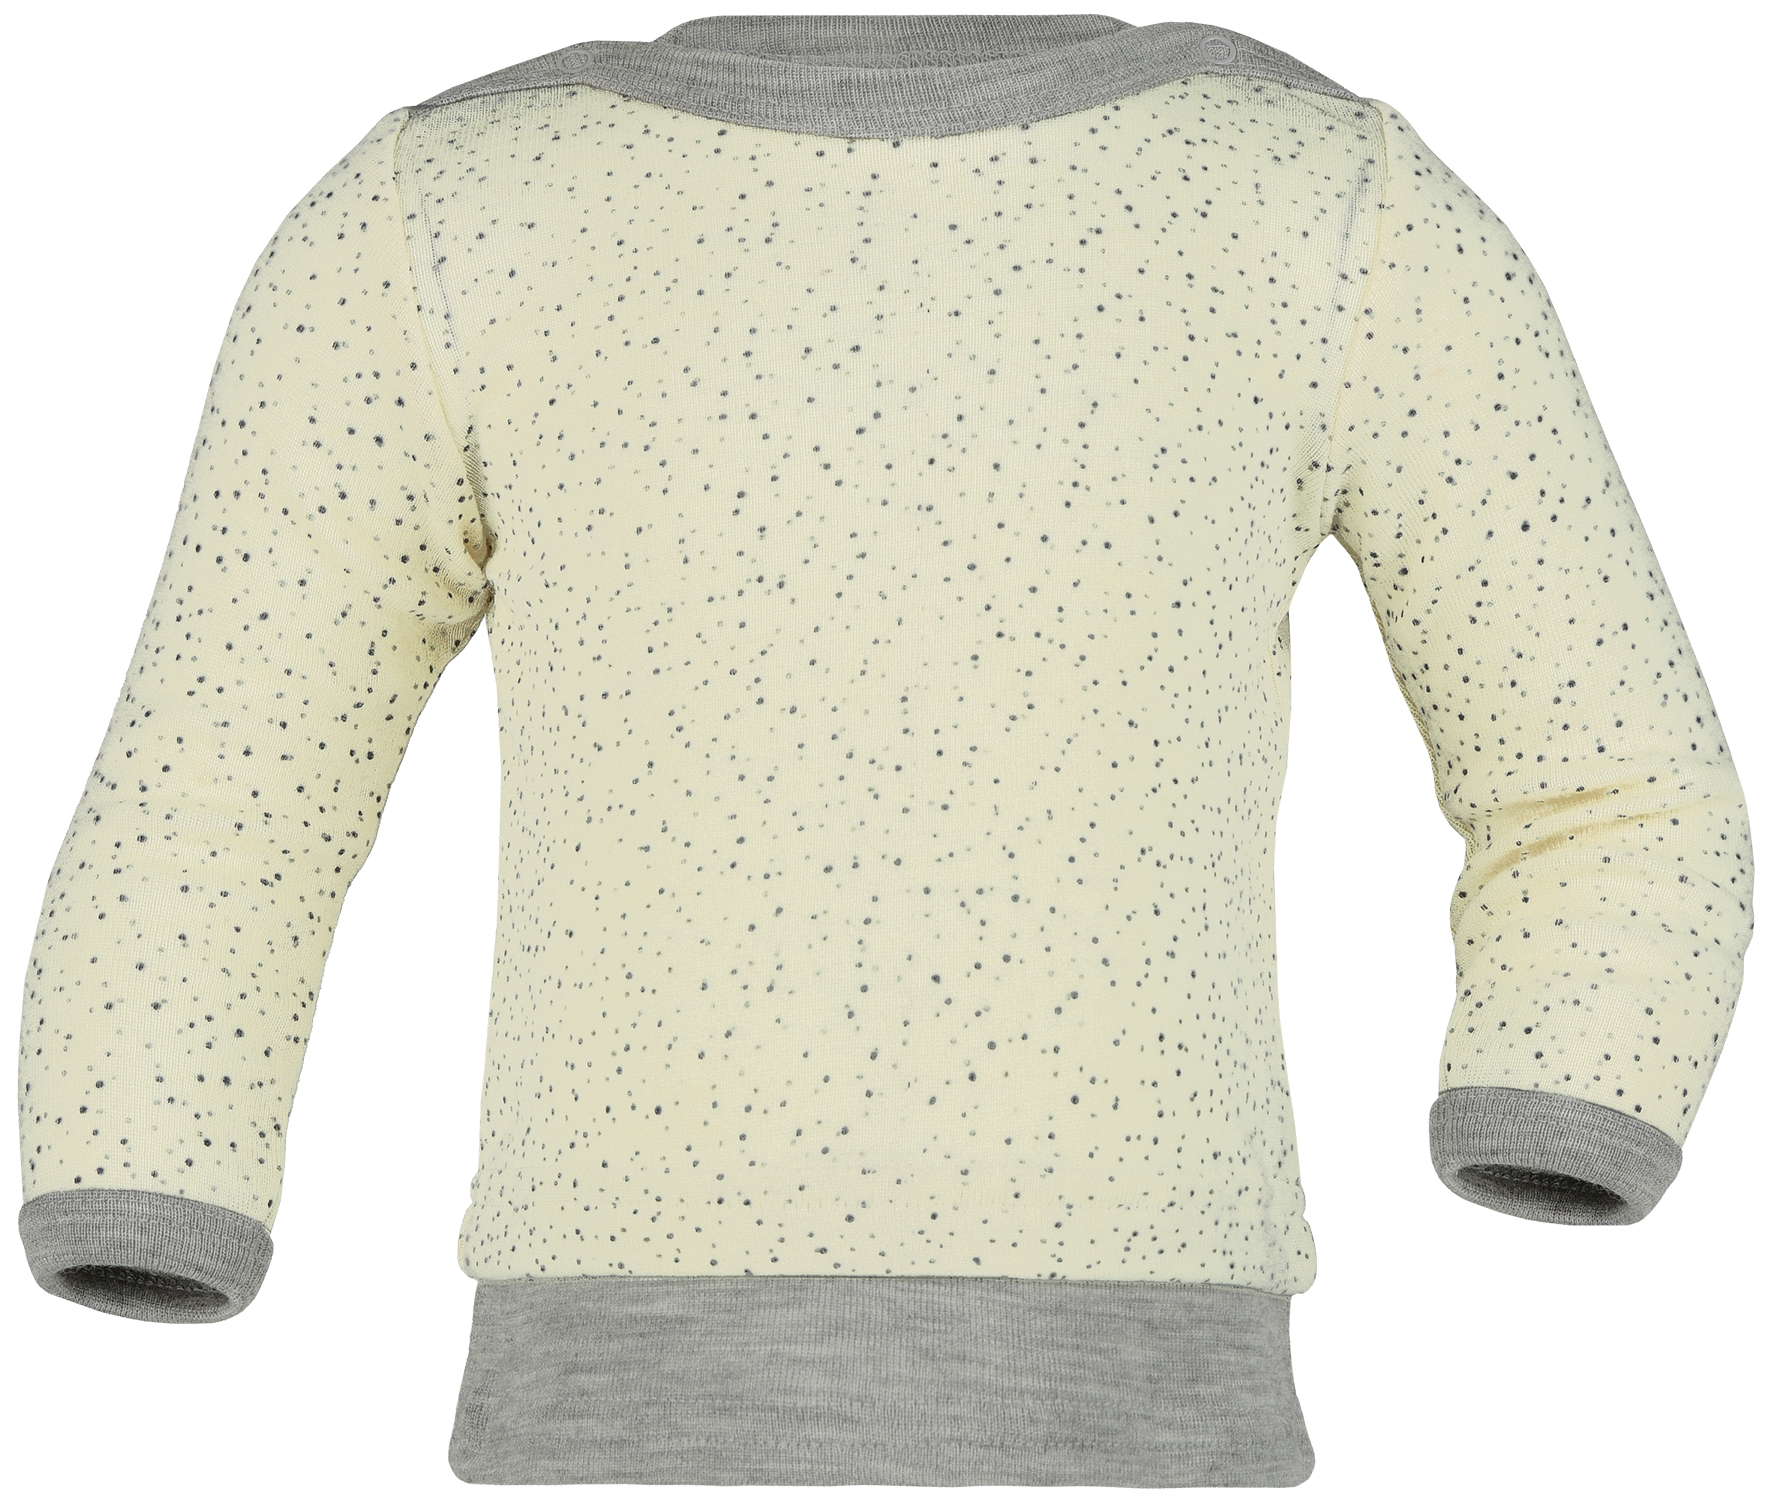 Upon order: Baby wool-silk sweater, with press-studs on the shoulder, printed